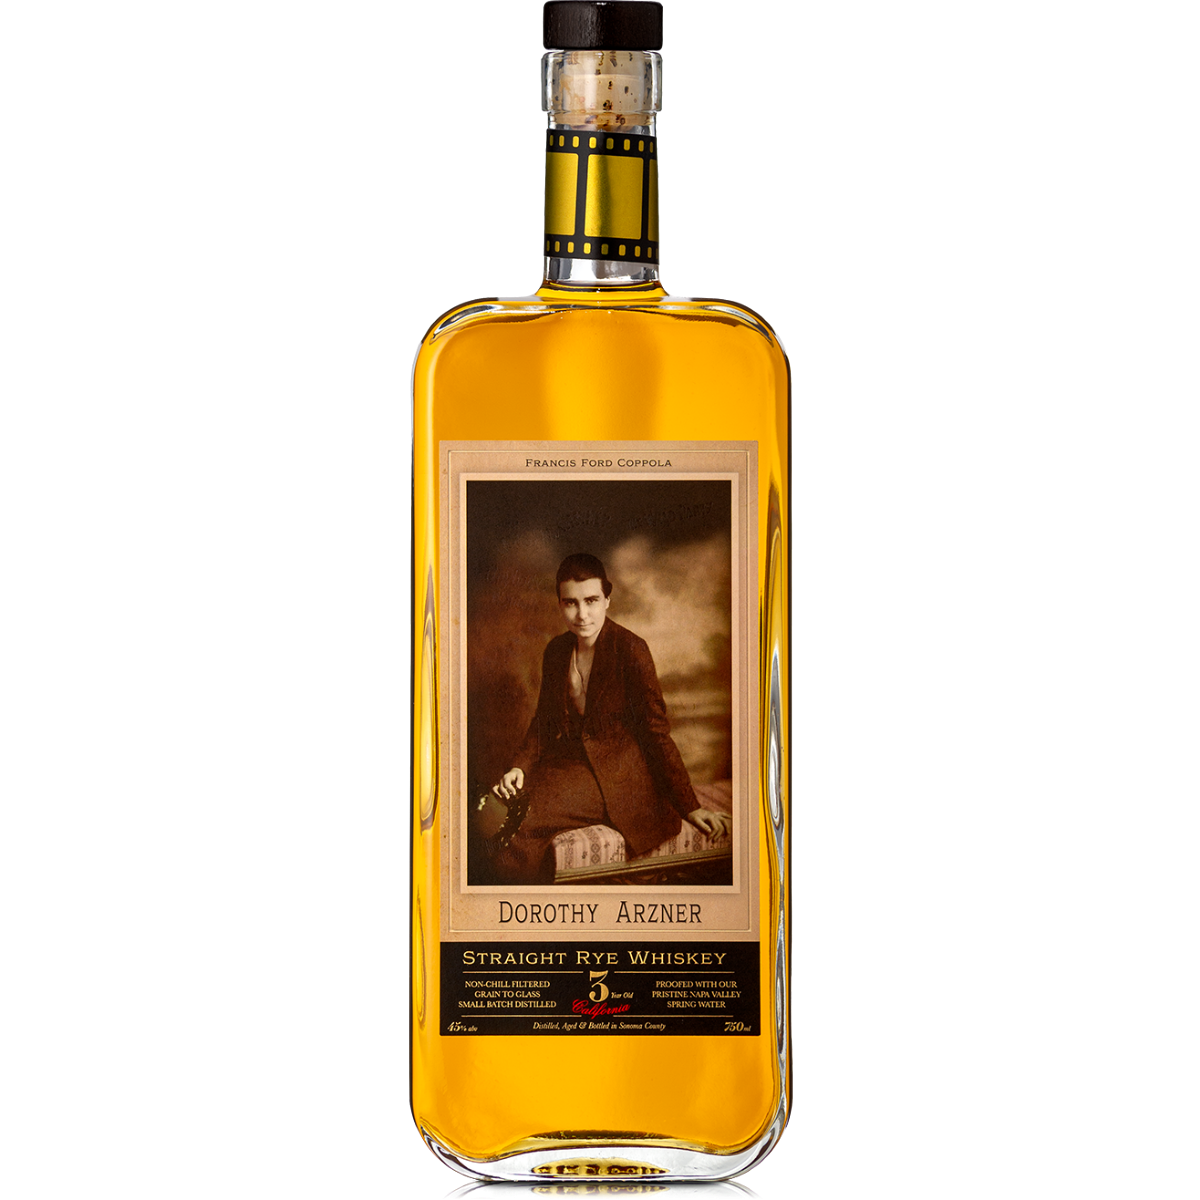 Dorothy Arzner Straight Rye Whiskey 3 Year (750mL)